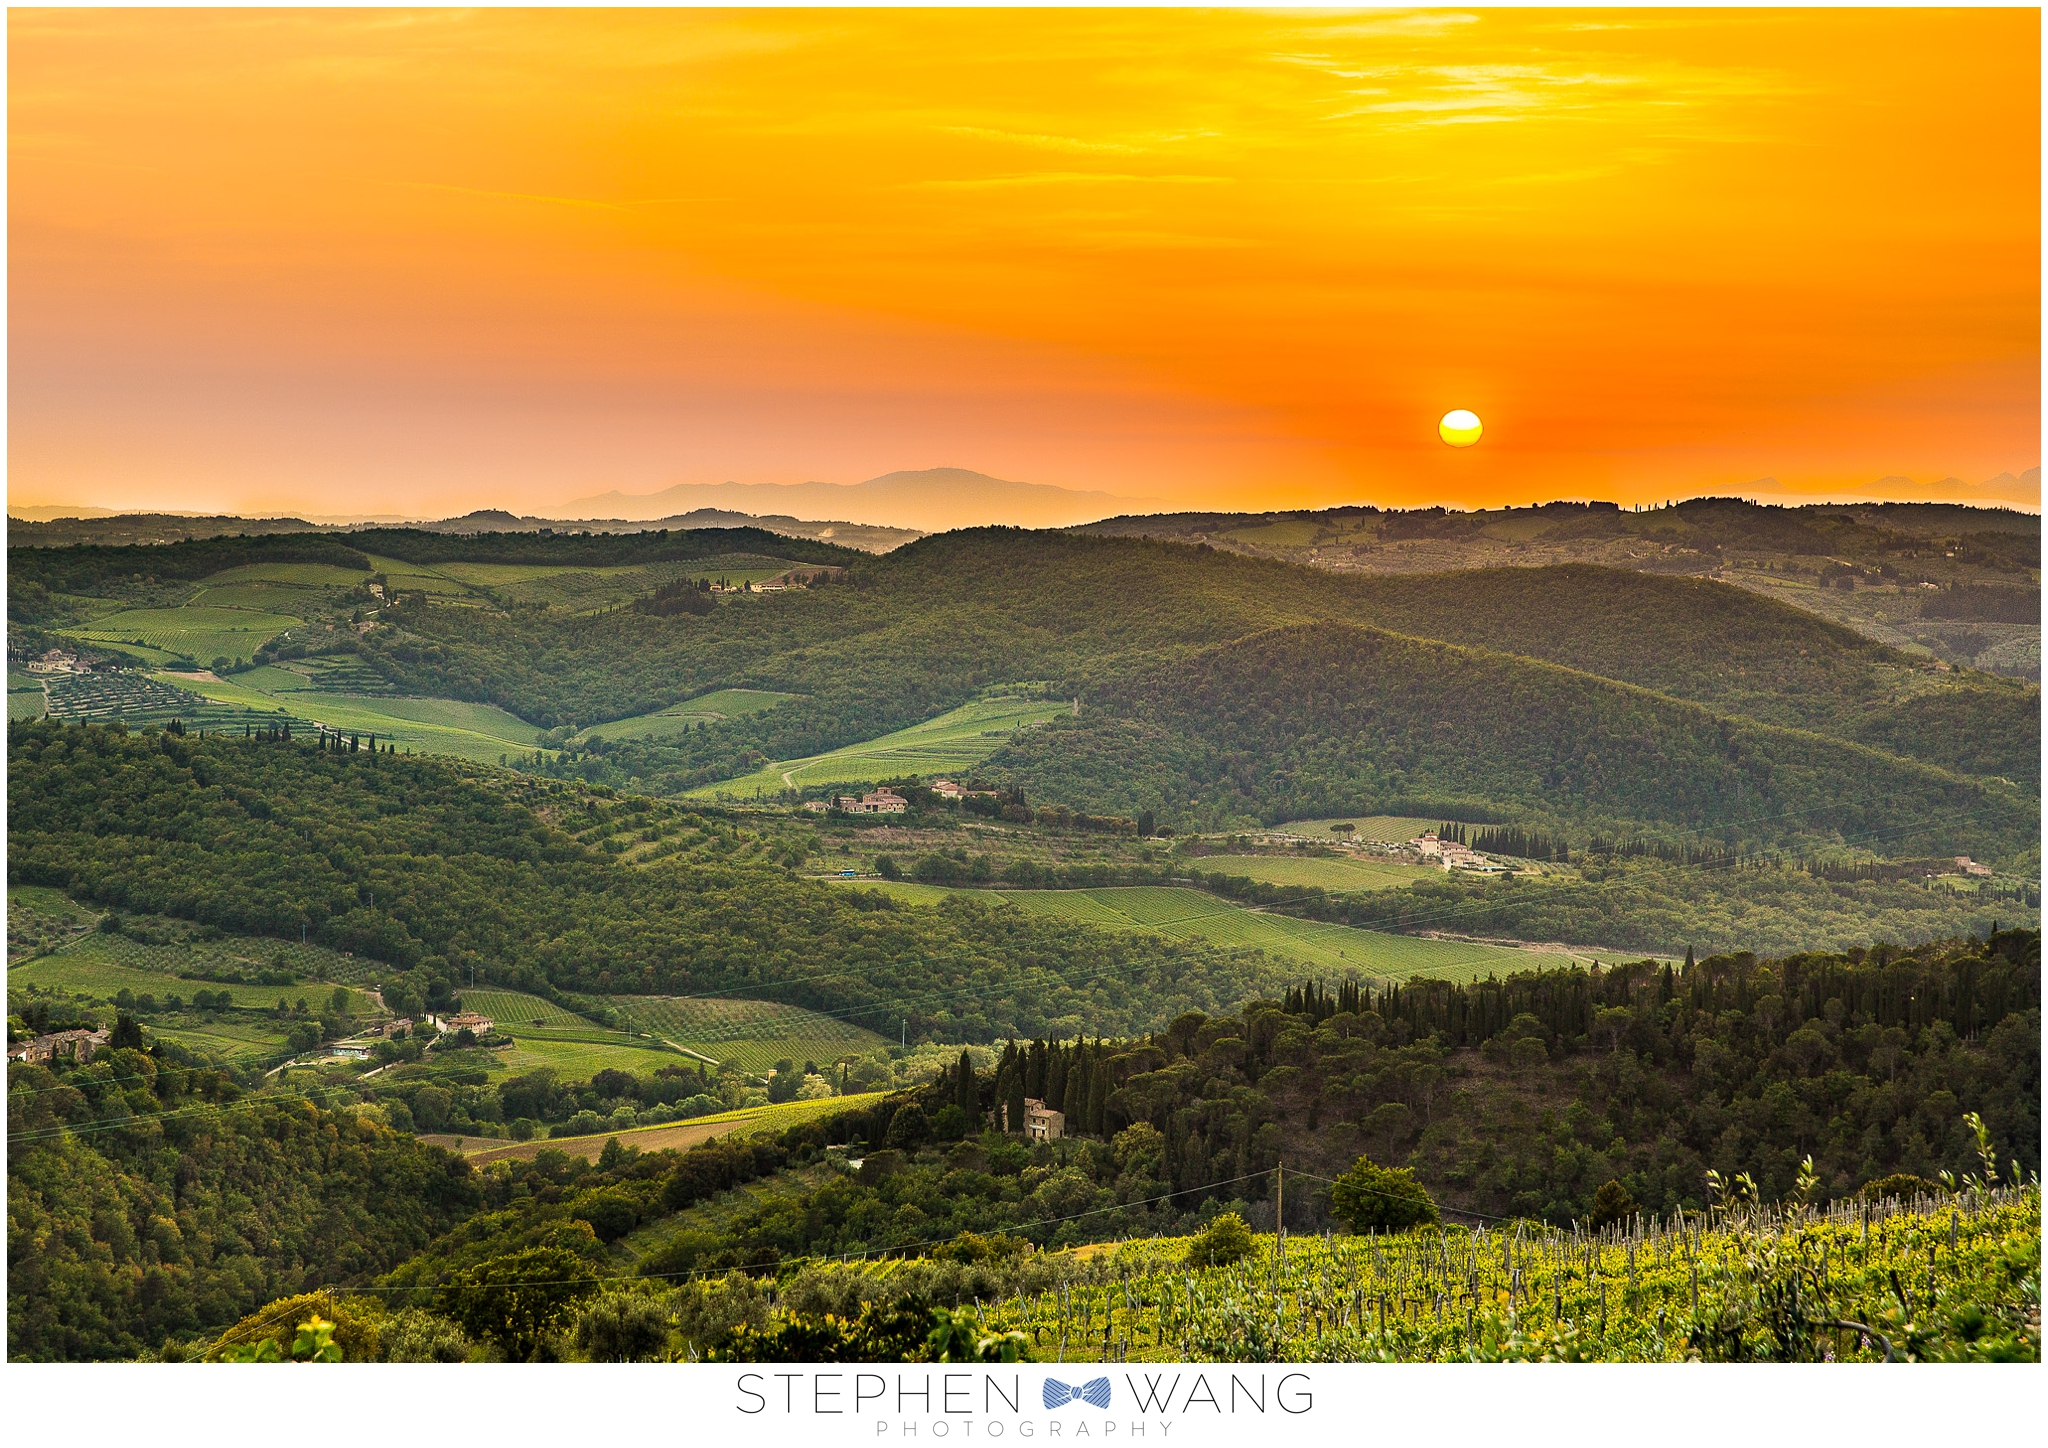 Sunsets in Tuscany are BOSS.  The restaurant we had dinner at, Ristoro di Lamole, was perched at the top of a hill, and had quite possibly the best view of any restaurant I've been to.